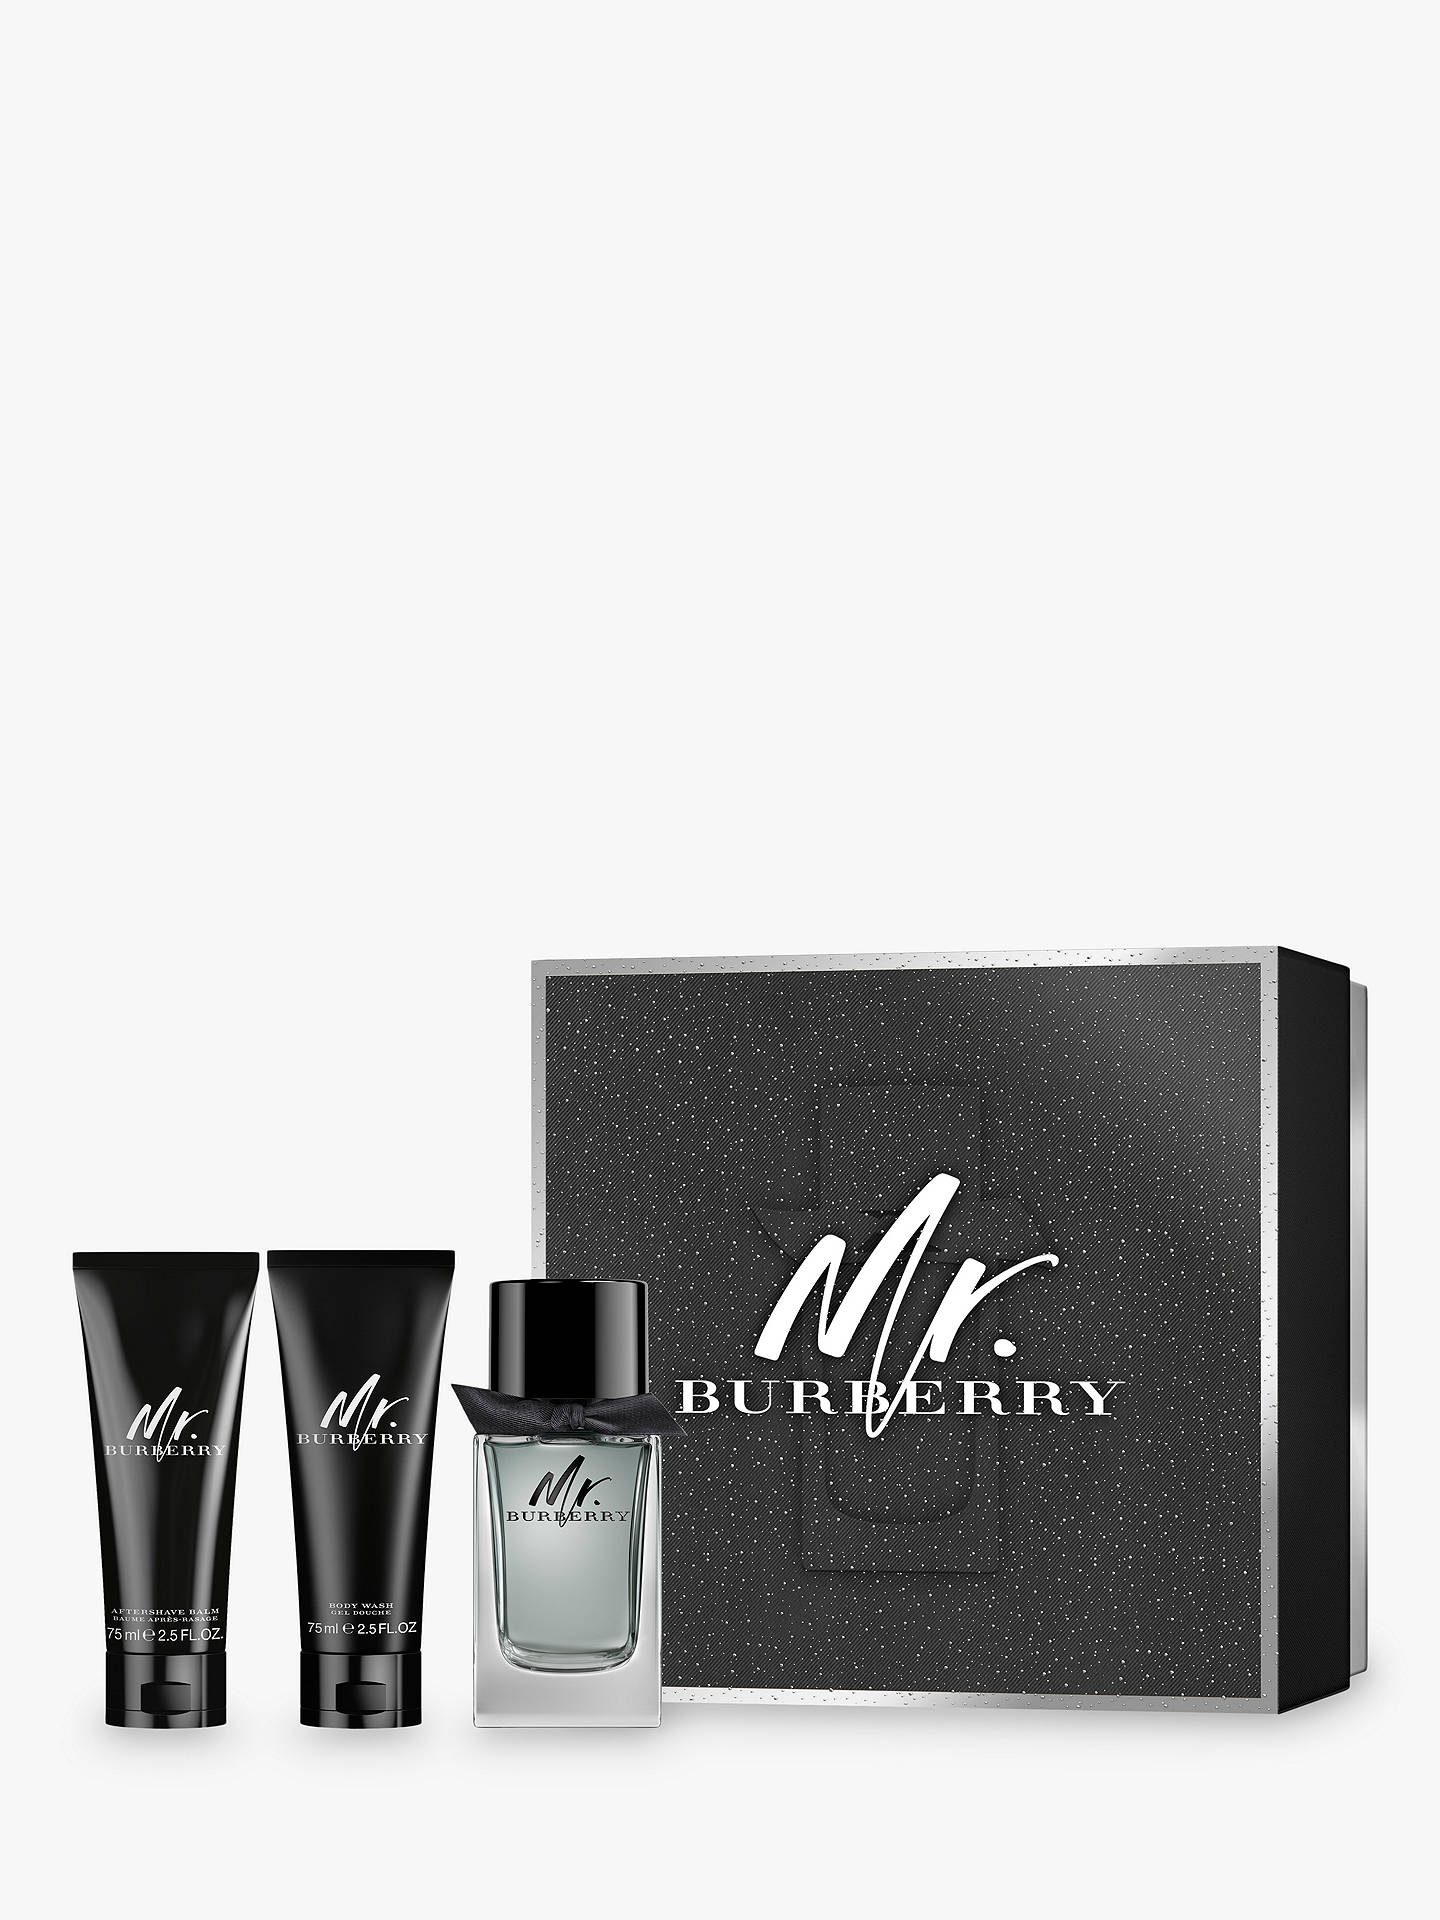 735d9c3e92 Buy Mr. Burberry 100ml Eau de Toilette Fragrance Gift Set Online at  johnlewis.com ...